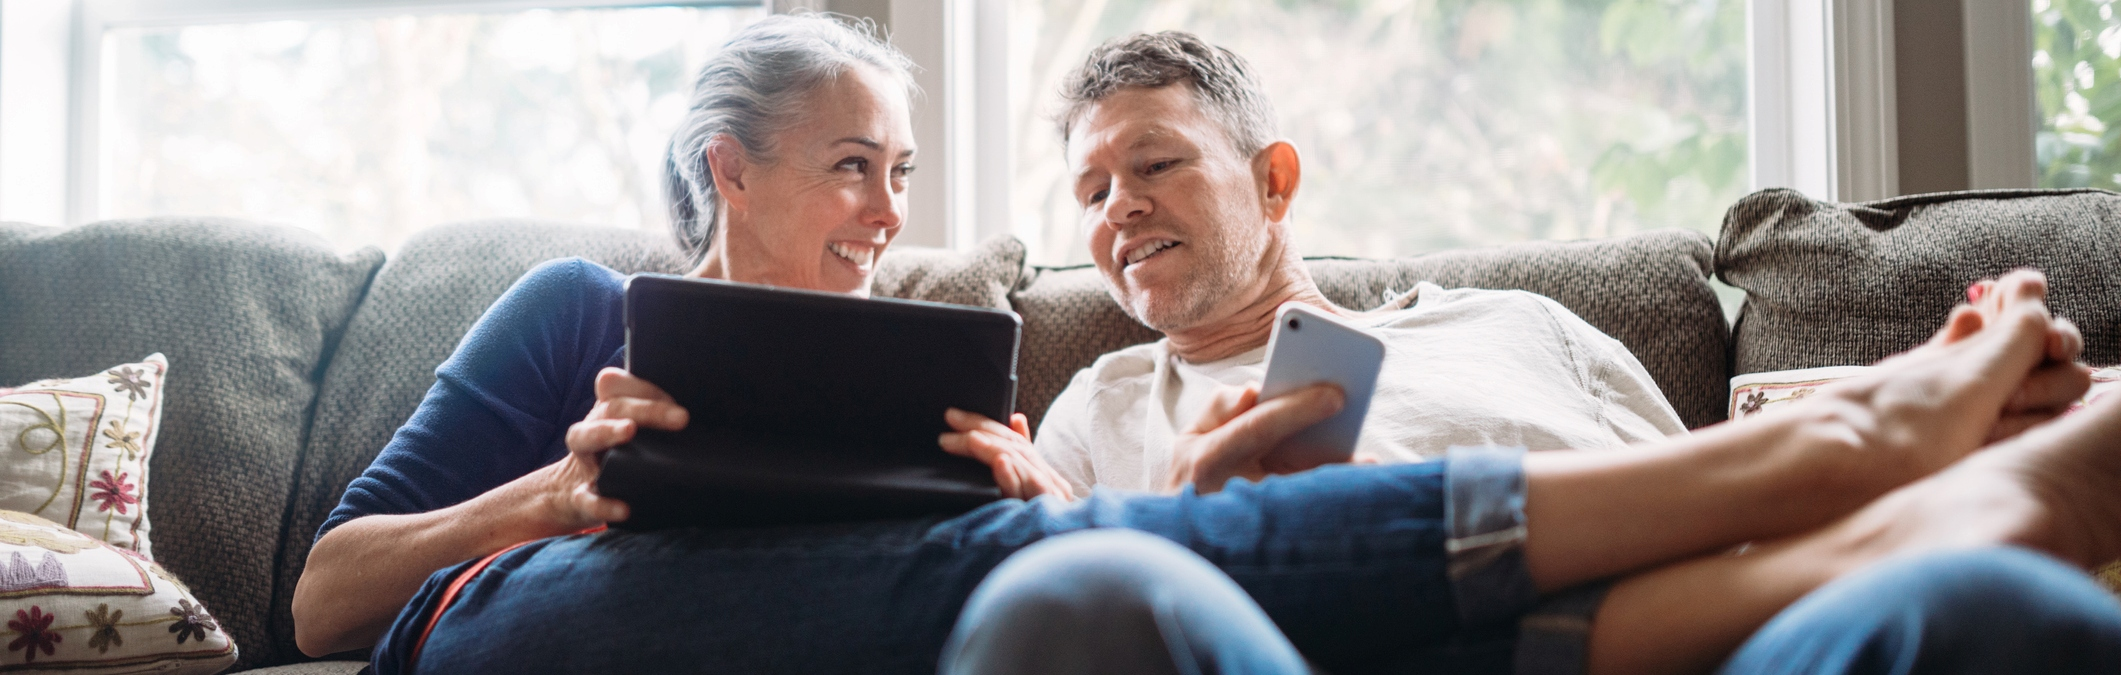 Couple sitting on the couch; woman is holding her tablet and man is holding his cellphone